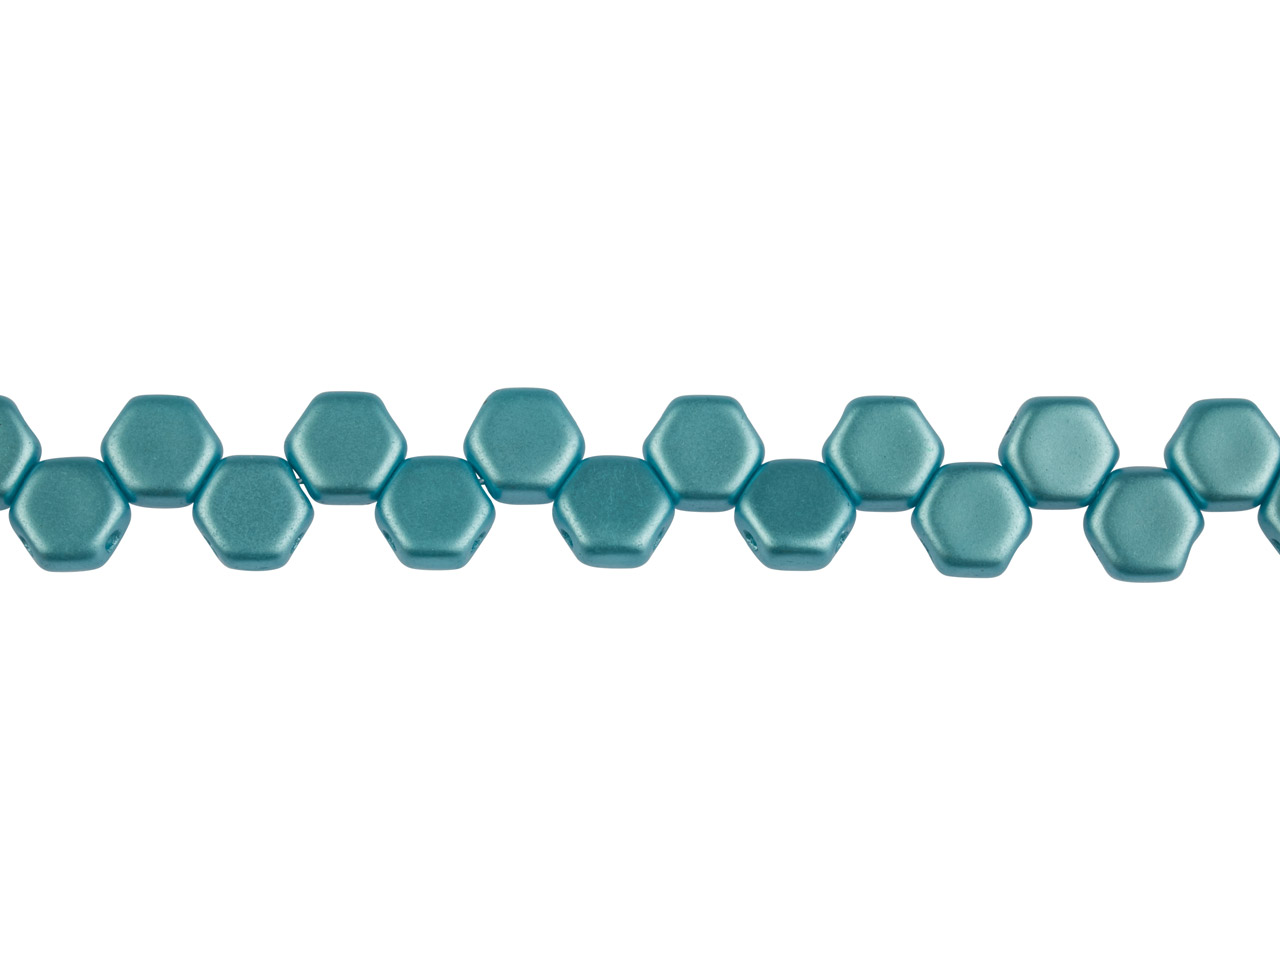 Honeycomb 6mm Czech Beads, Pastel  Aqua, Strand Of 30 Beads